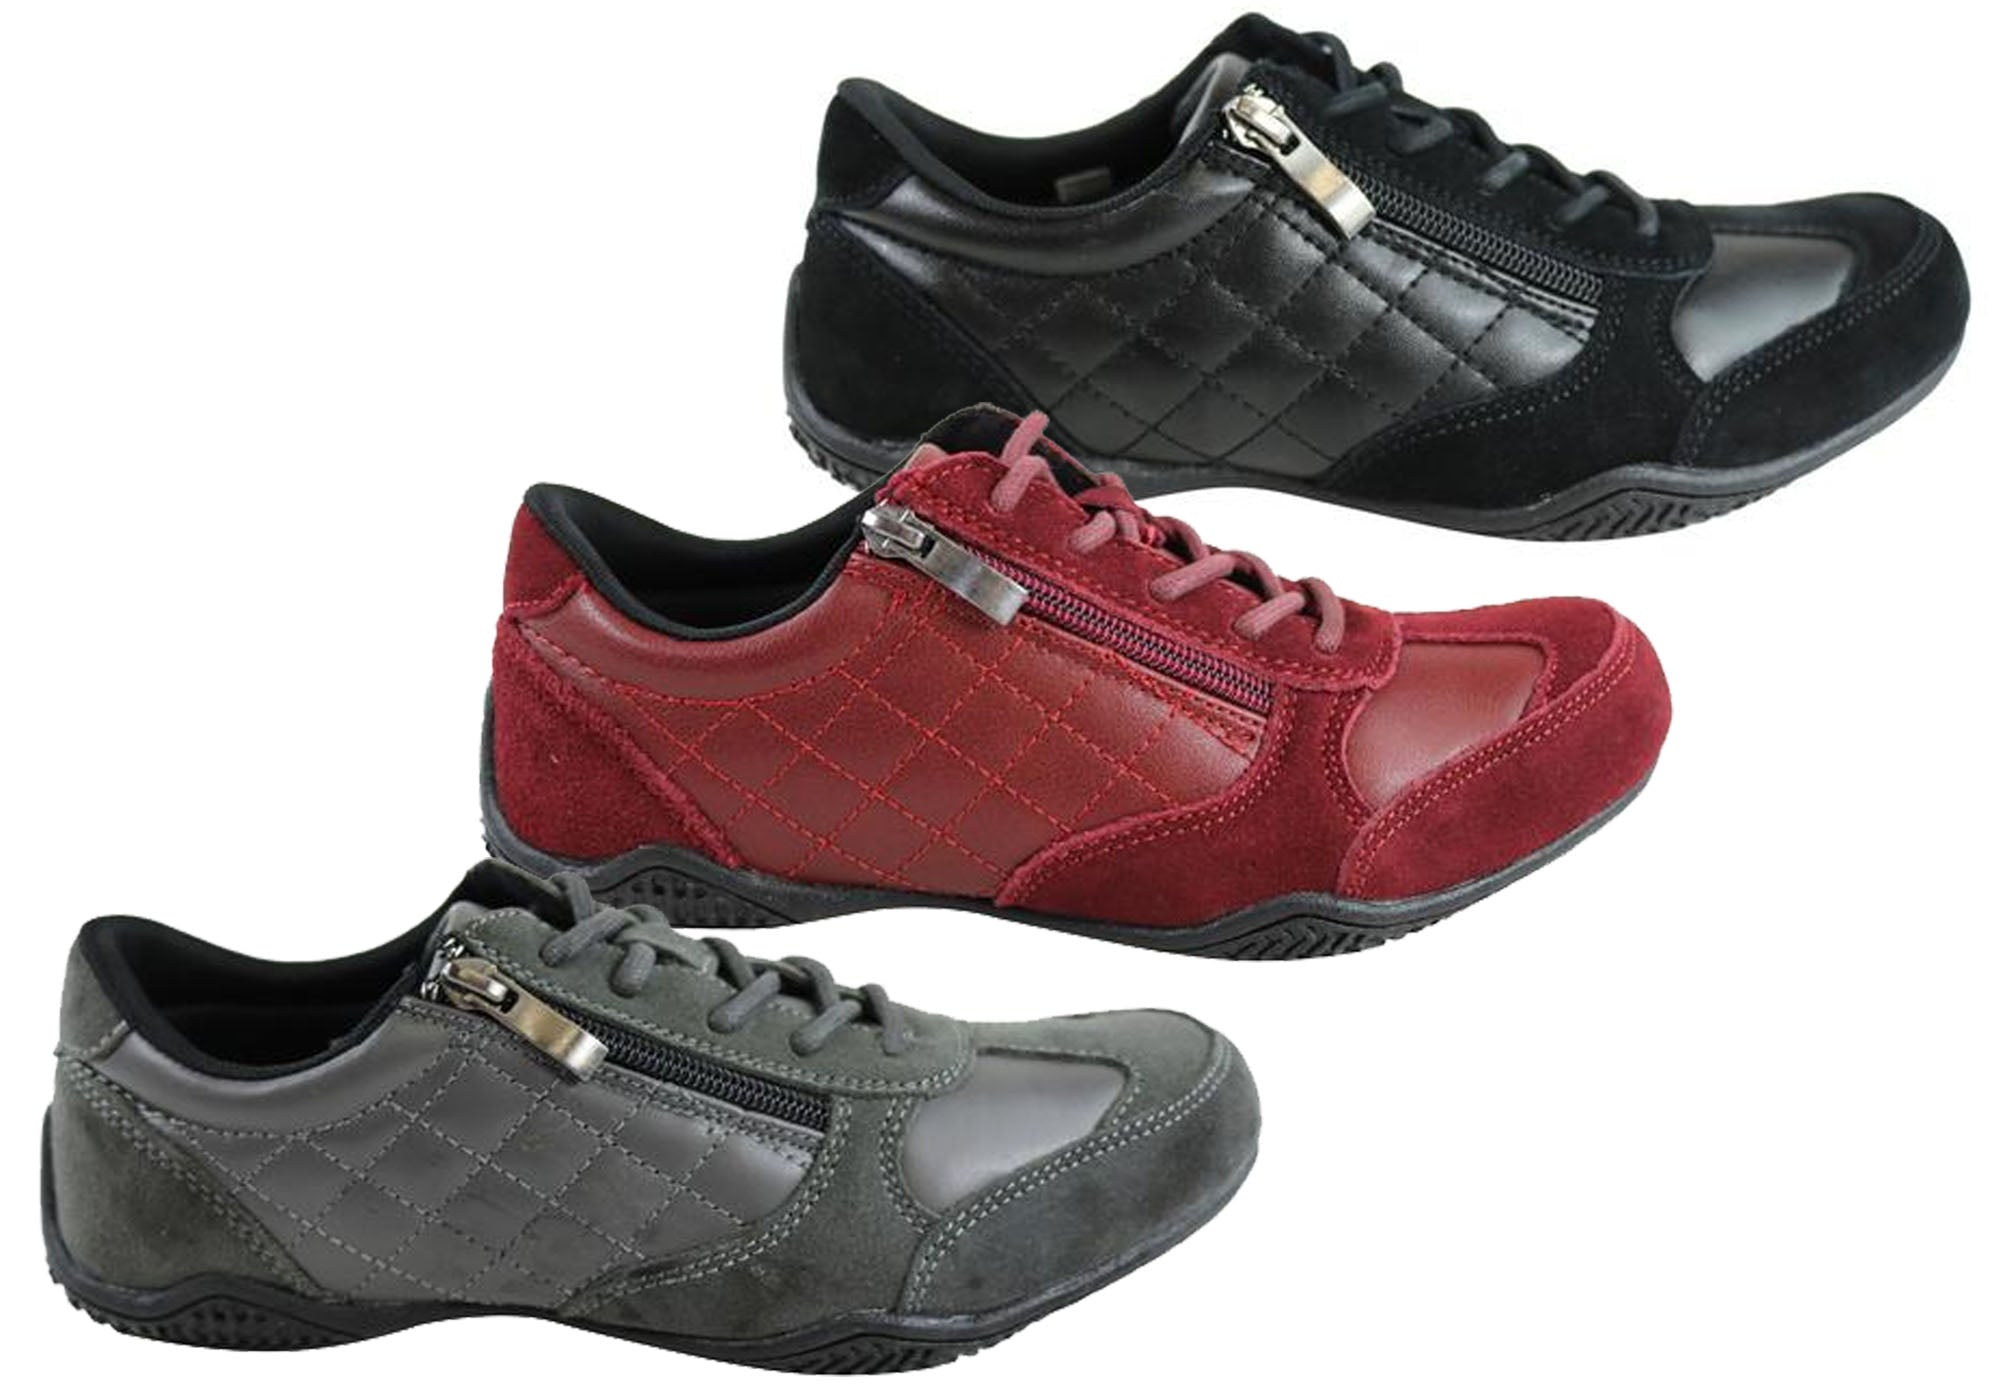 4a7a437a43284 Details about NEW SCHOLL ORTHAHEEL QUANTUM WOMENS COMFORT SUPPORTIVE FLAT  CASUAL SHOES